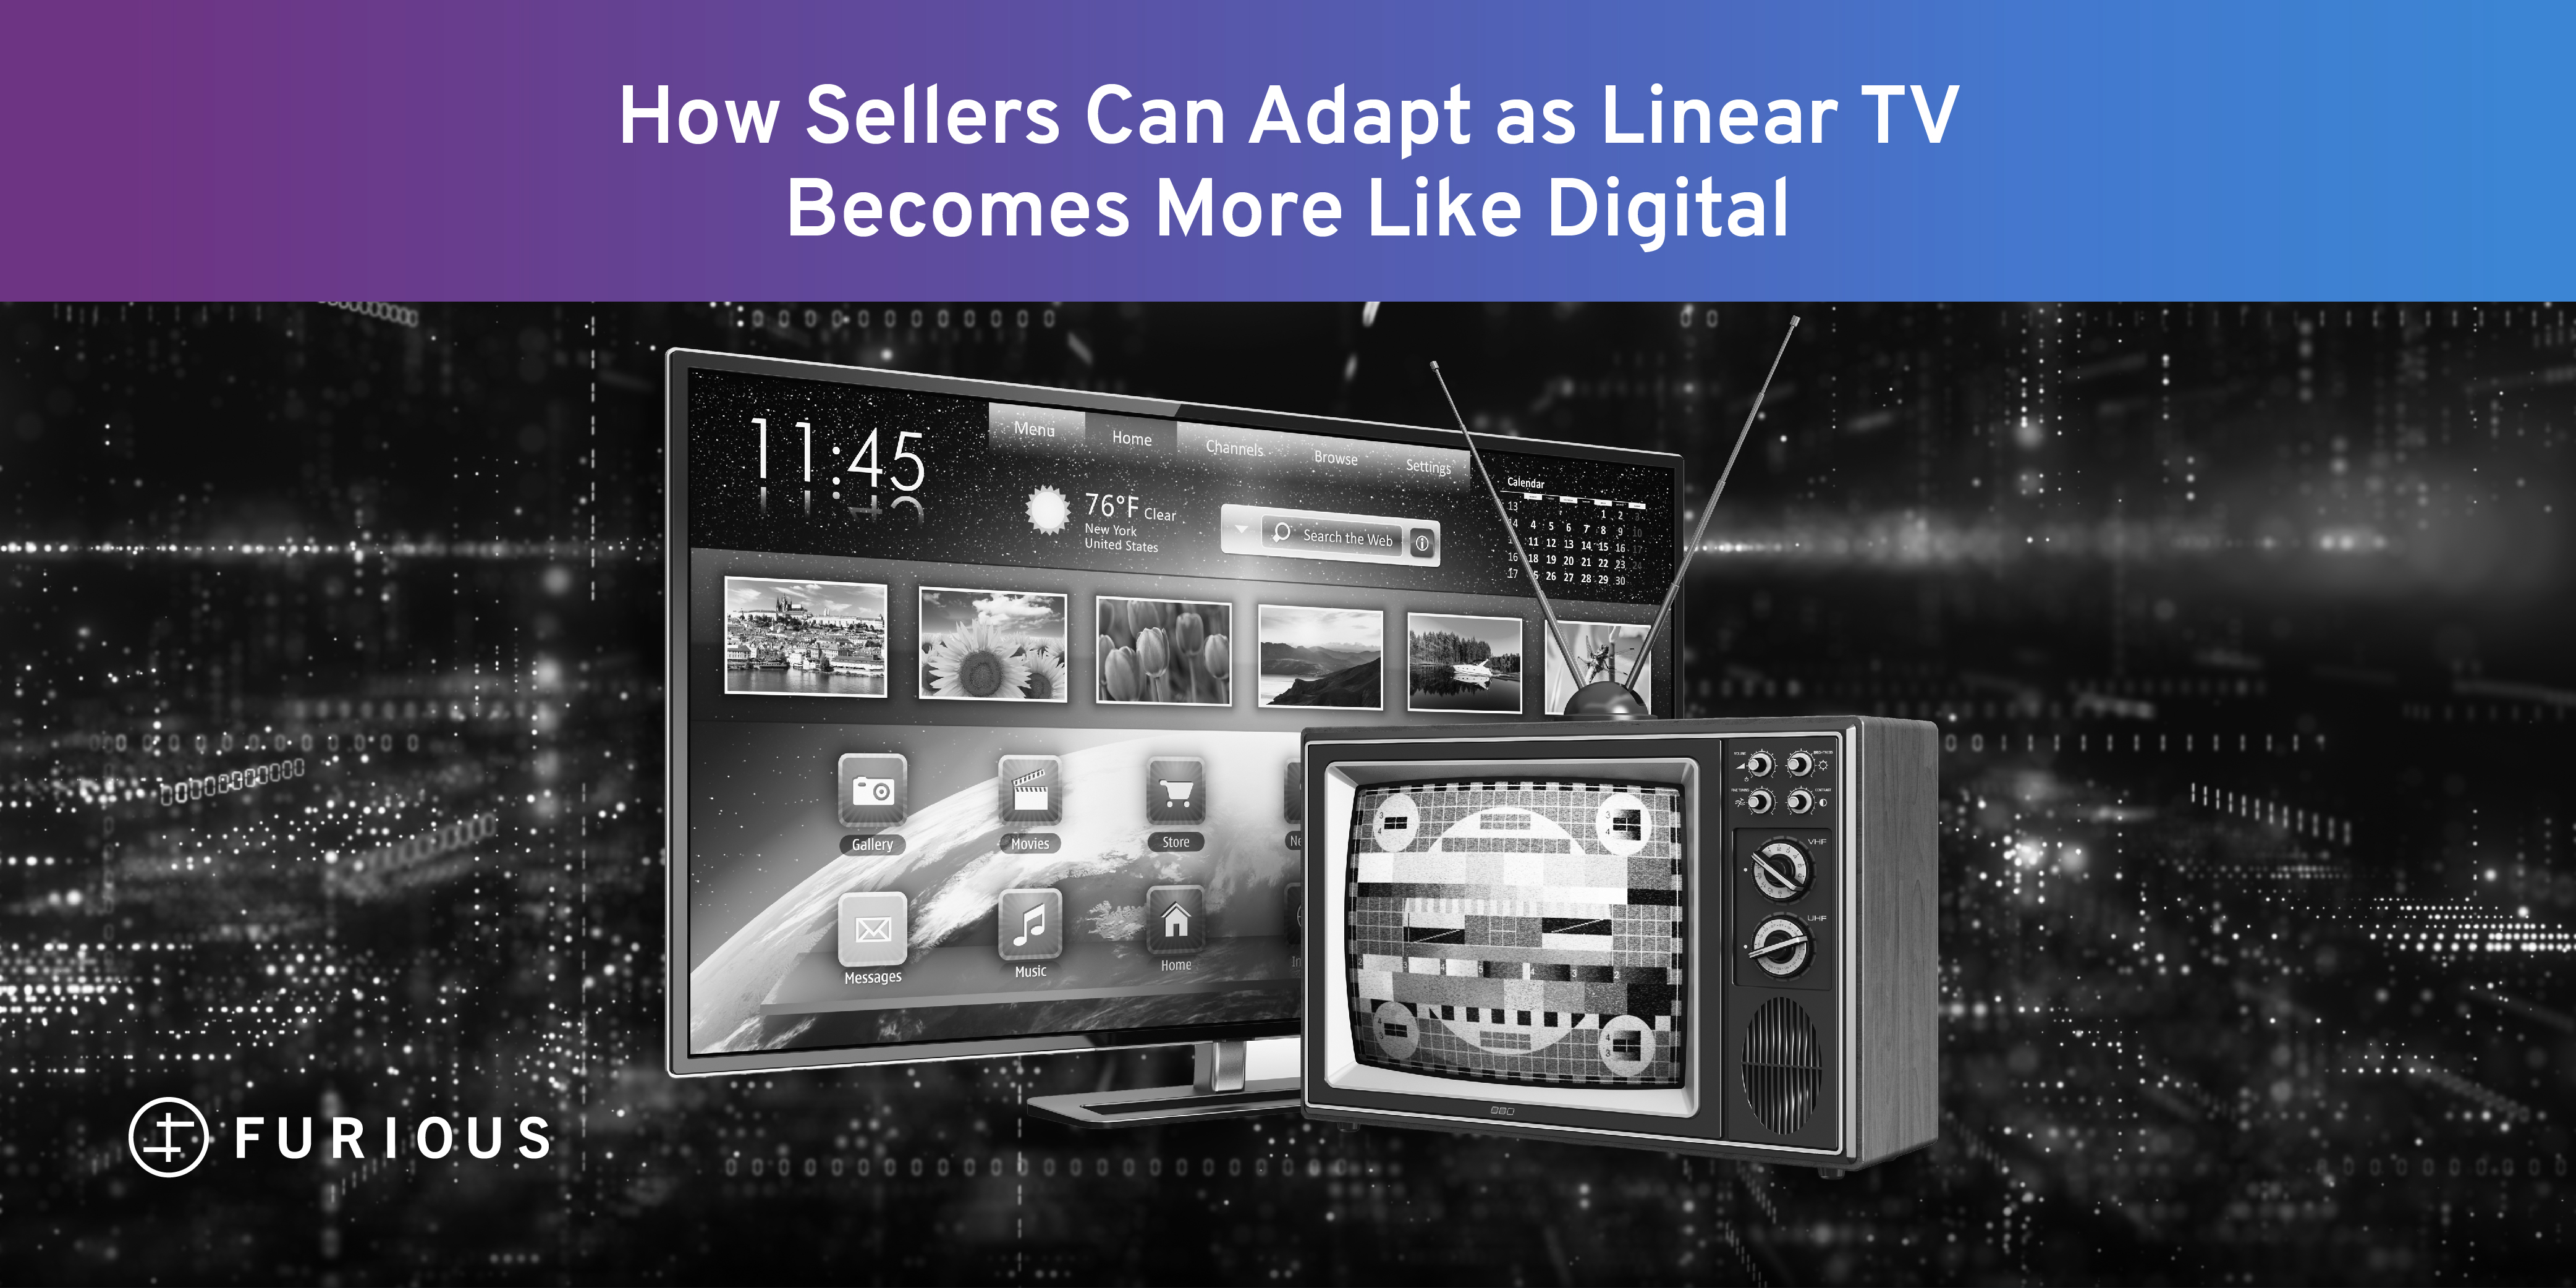 How Sellers Can Adapt as Linear TV Becomes More Like Digital